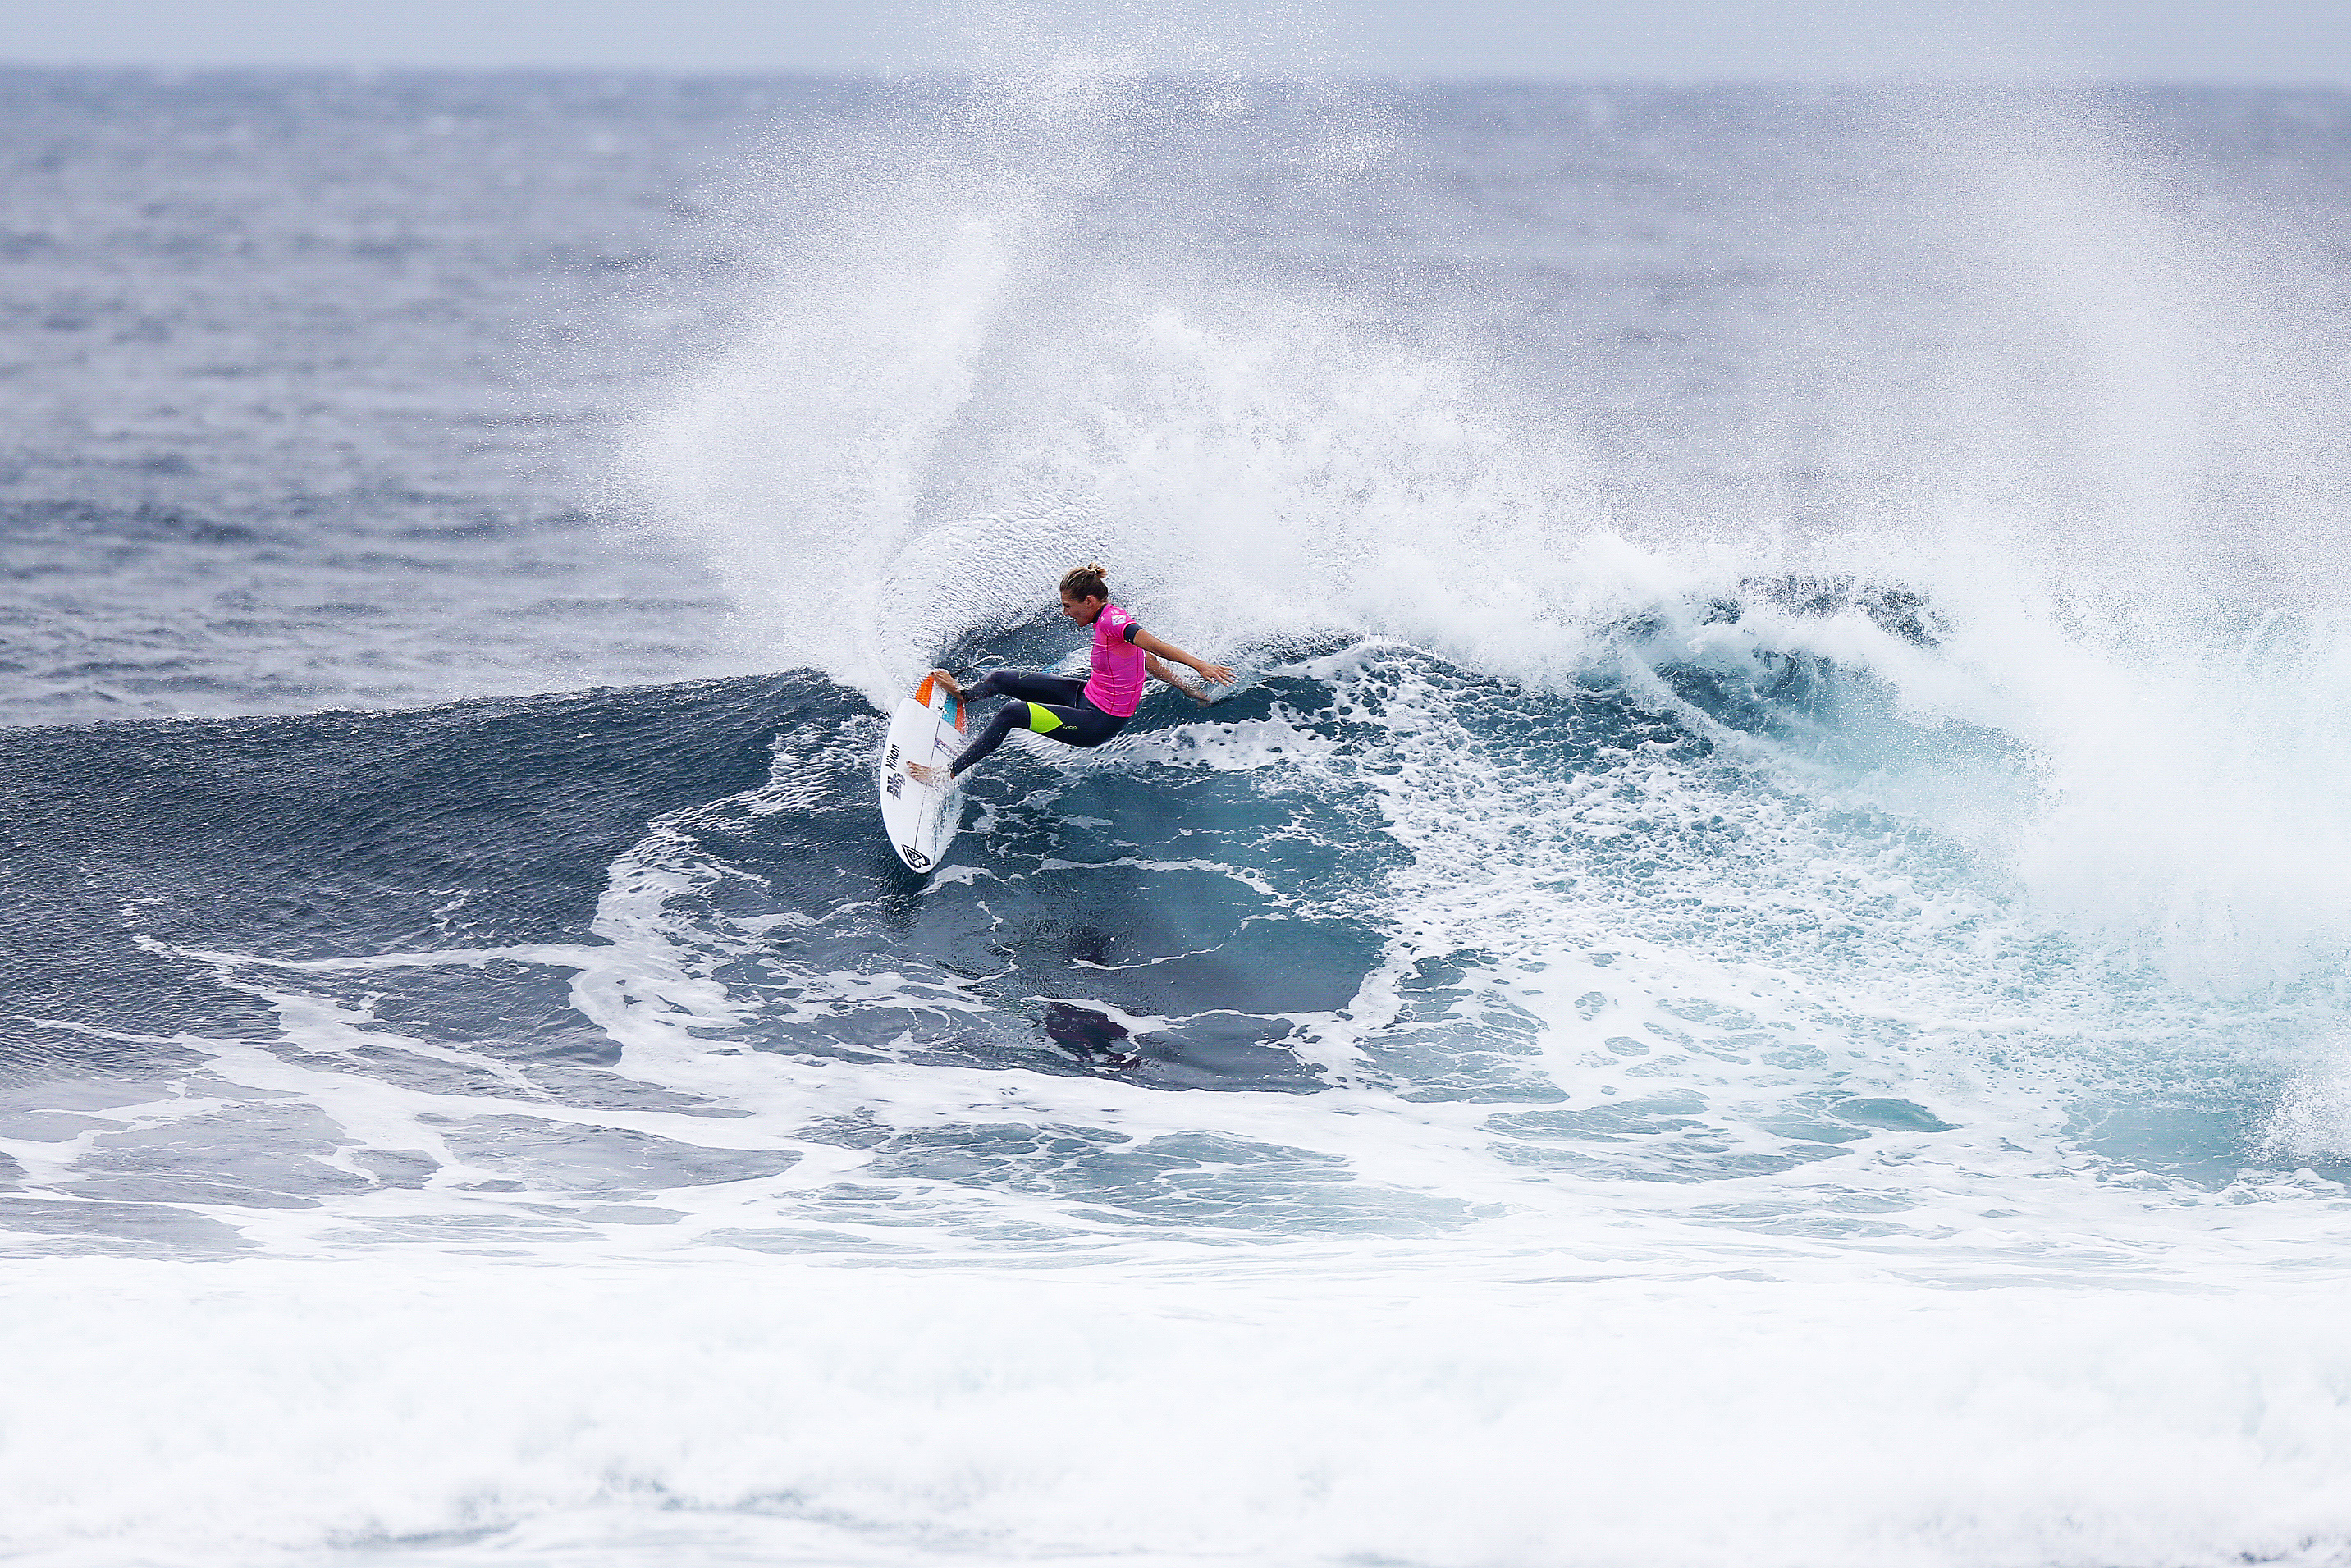 Stephanie Gilmore winning her round four heat at the Drug Aware Margaret River Pro in Western Australia.